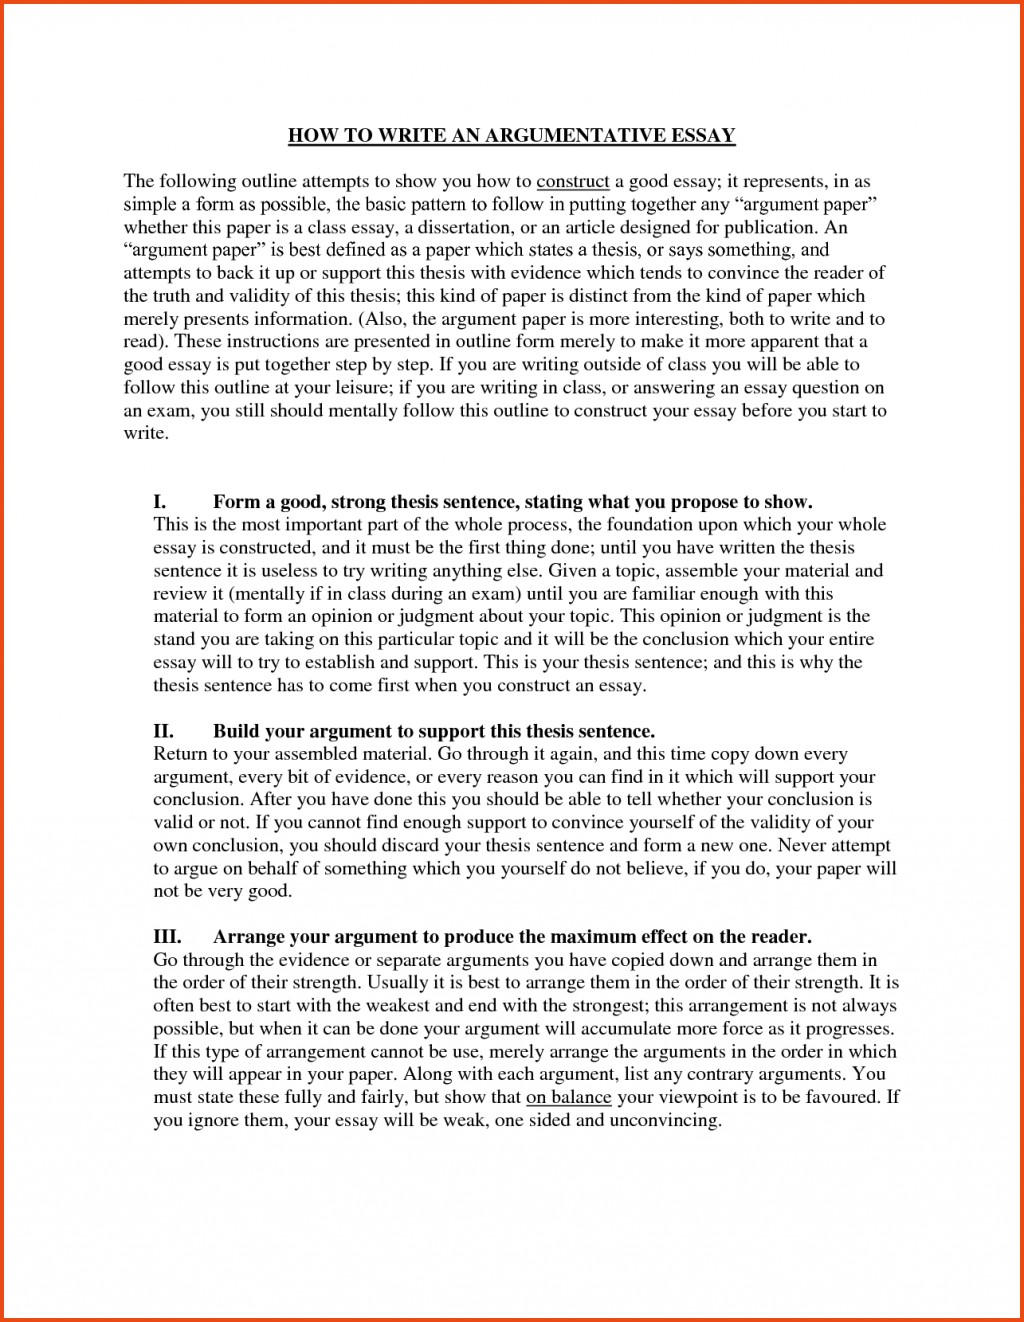 005 Essay Example How To Start An Brilliant Ideas Of Good Ways About Yourself Dissertation Nice Amazing Argumentative A Book With Definition Your Life Large